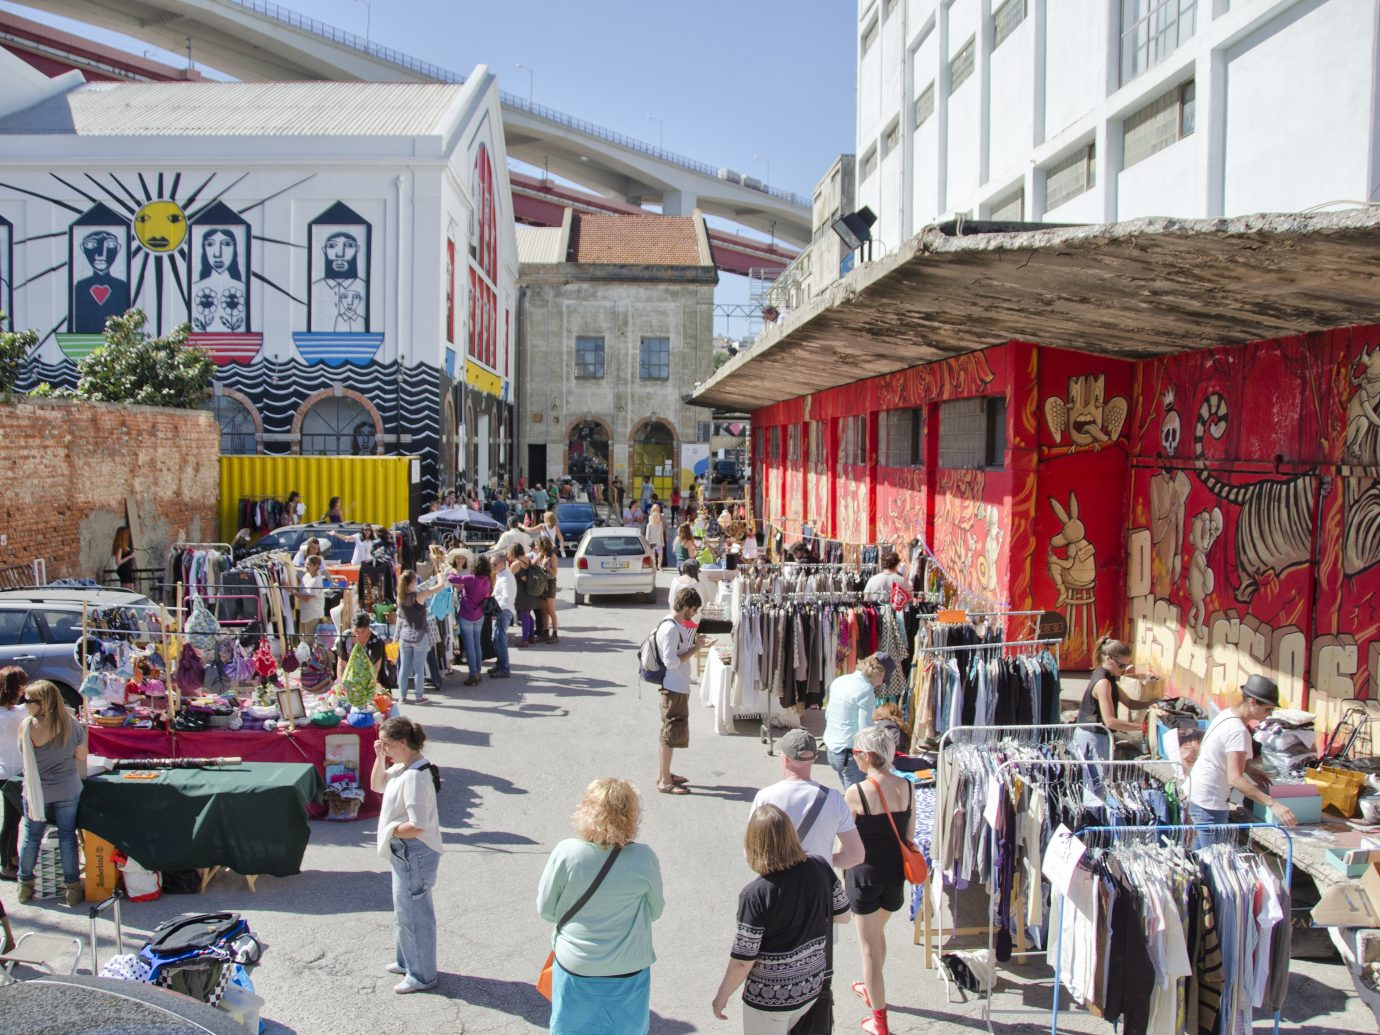 Outdoor market at LX Factory featuring tons of impressive wall art on building exteriors along with people shopping for hip second hand clothing